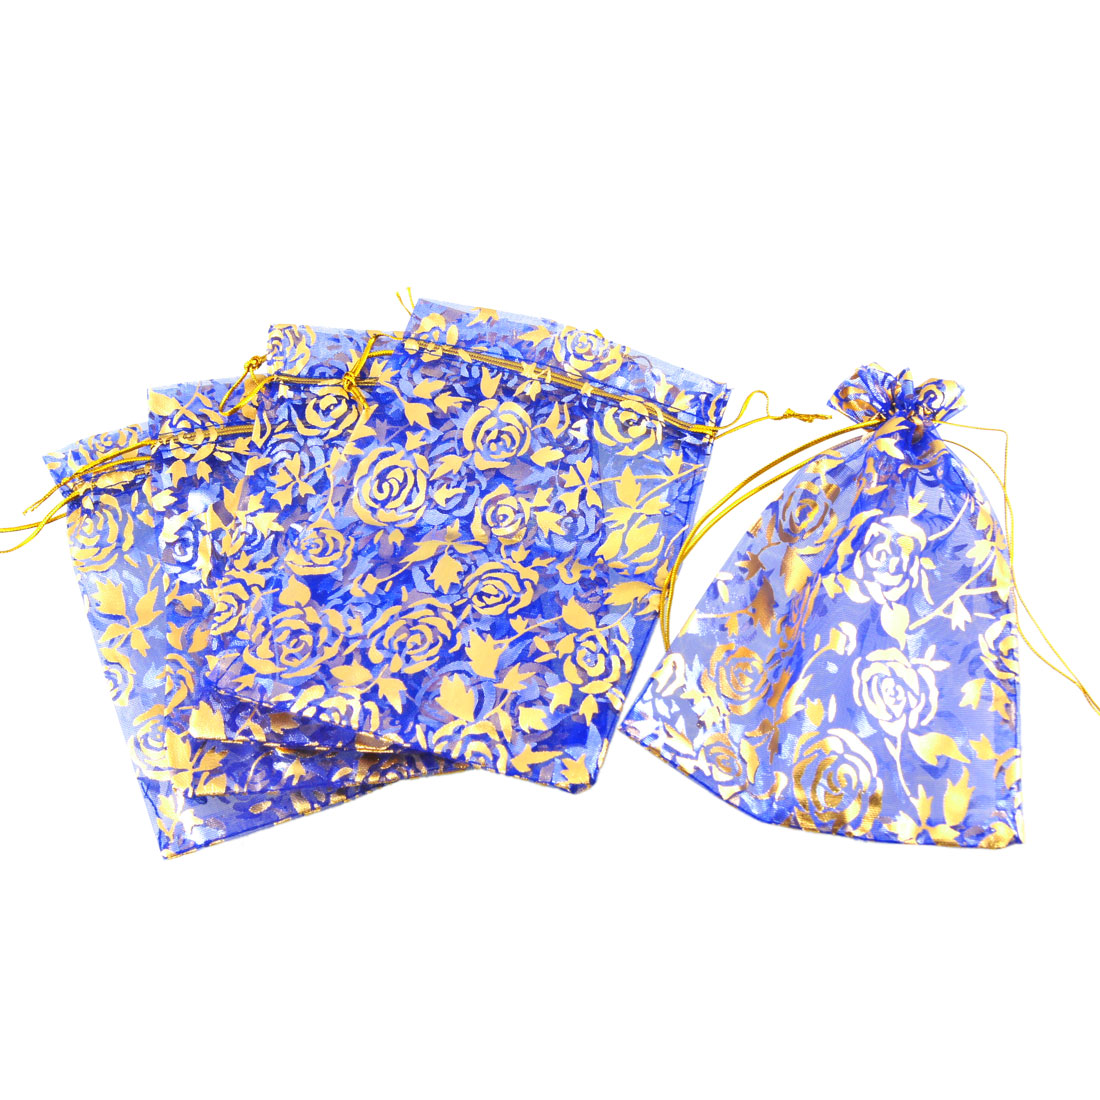 5 Pcs Gold Tone Flower Pattern Blue Organza Wedding Candy Gift Bag Pouch